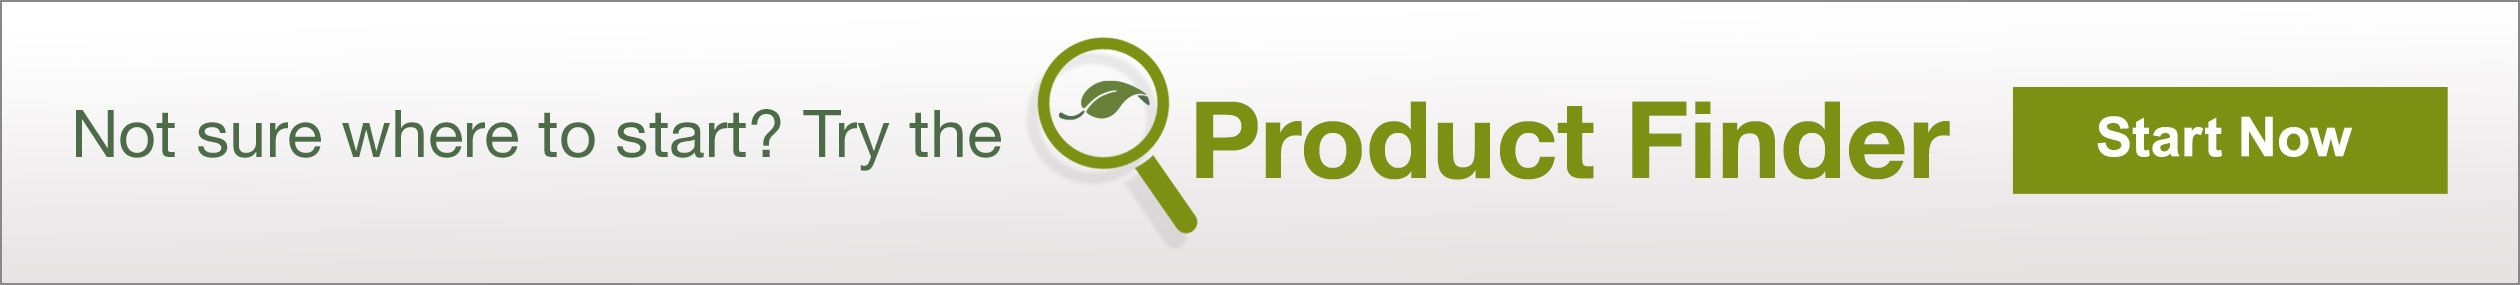 Product Finder